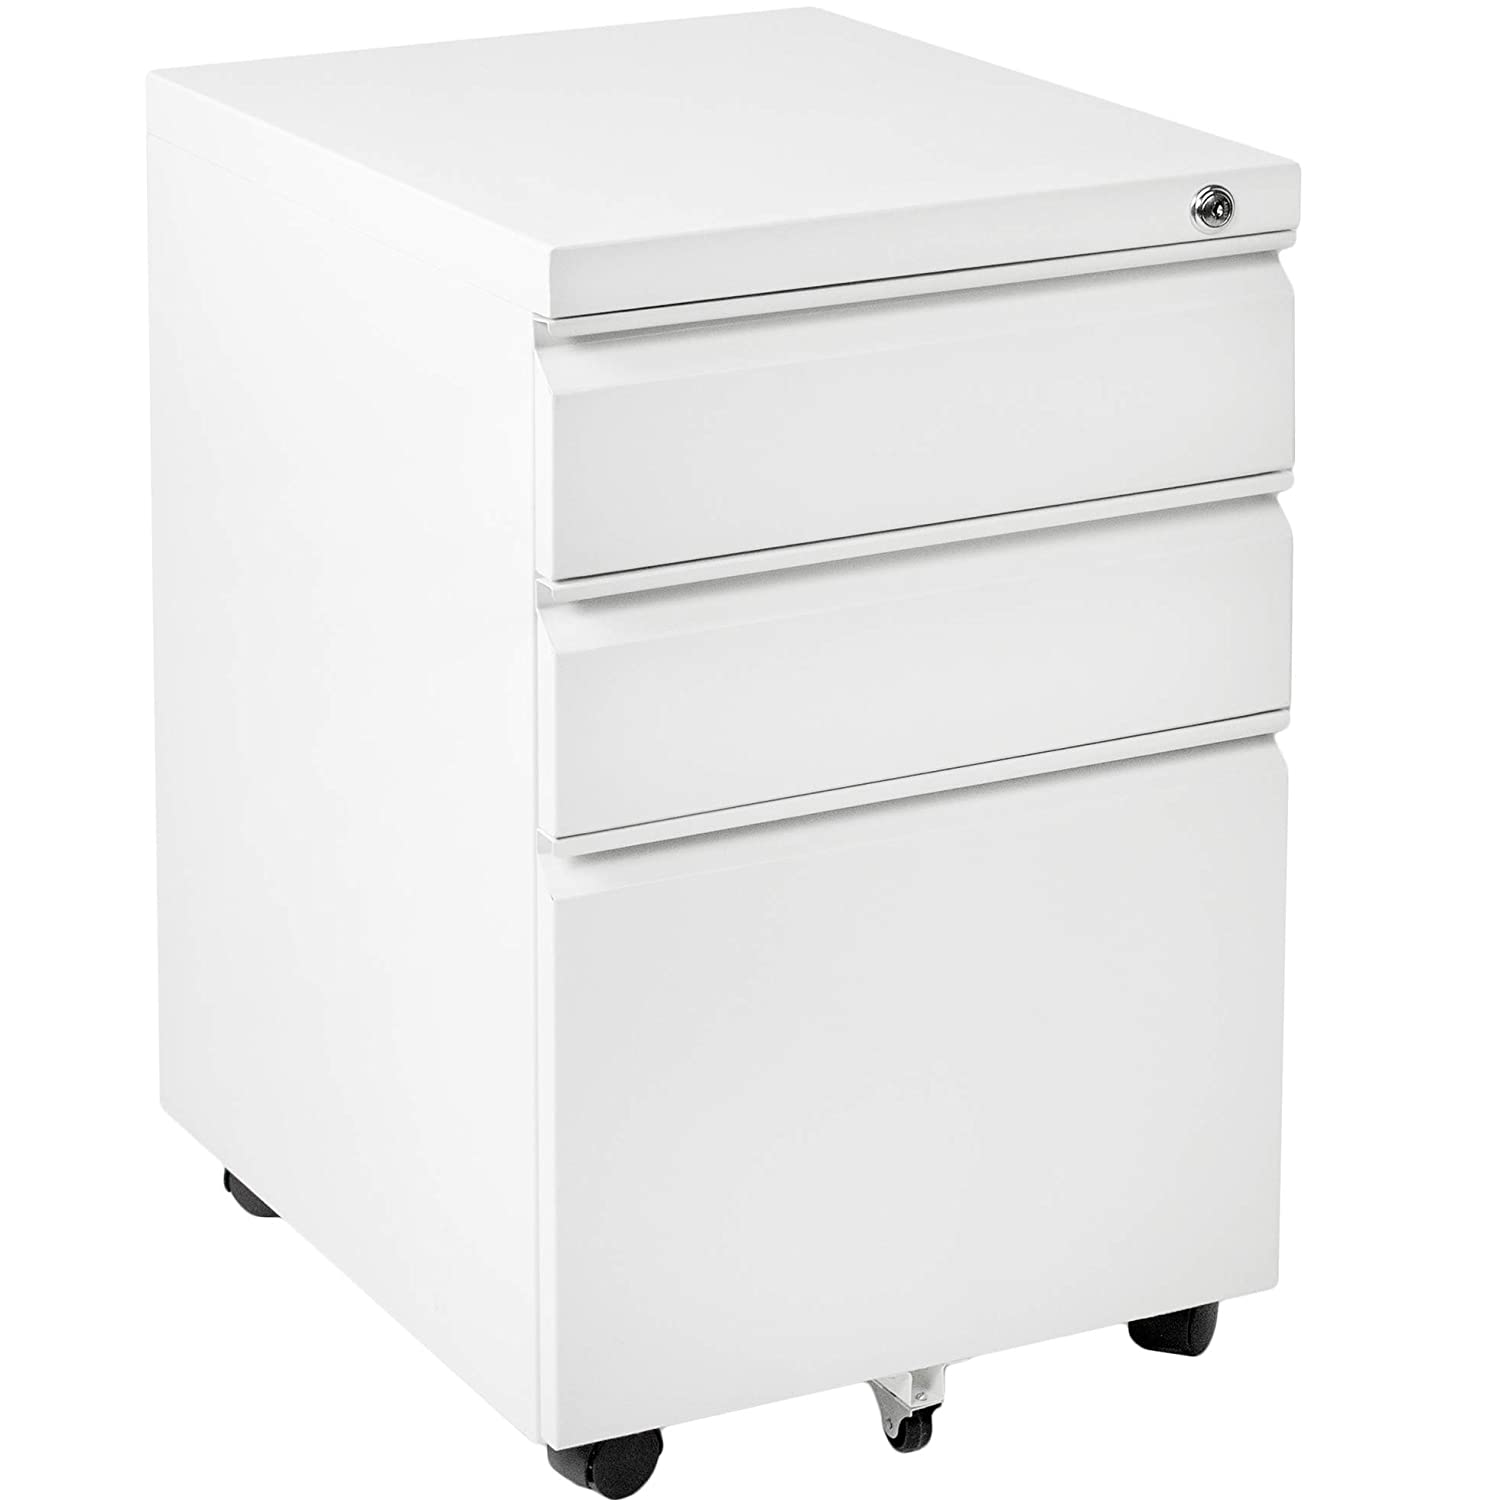 FILE-MB01W Rolling Pedestal Storage Cabinet on Wheels VIVO White Steel 3 Drawer Mobile Office File Cabinet with Lock